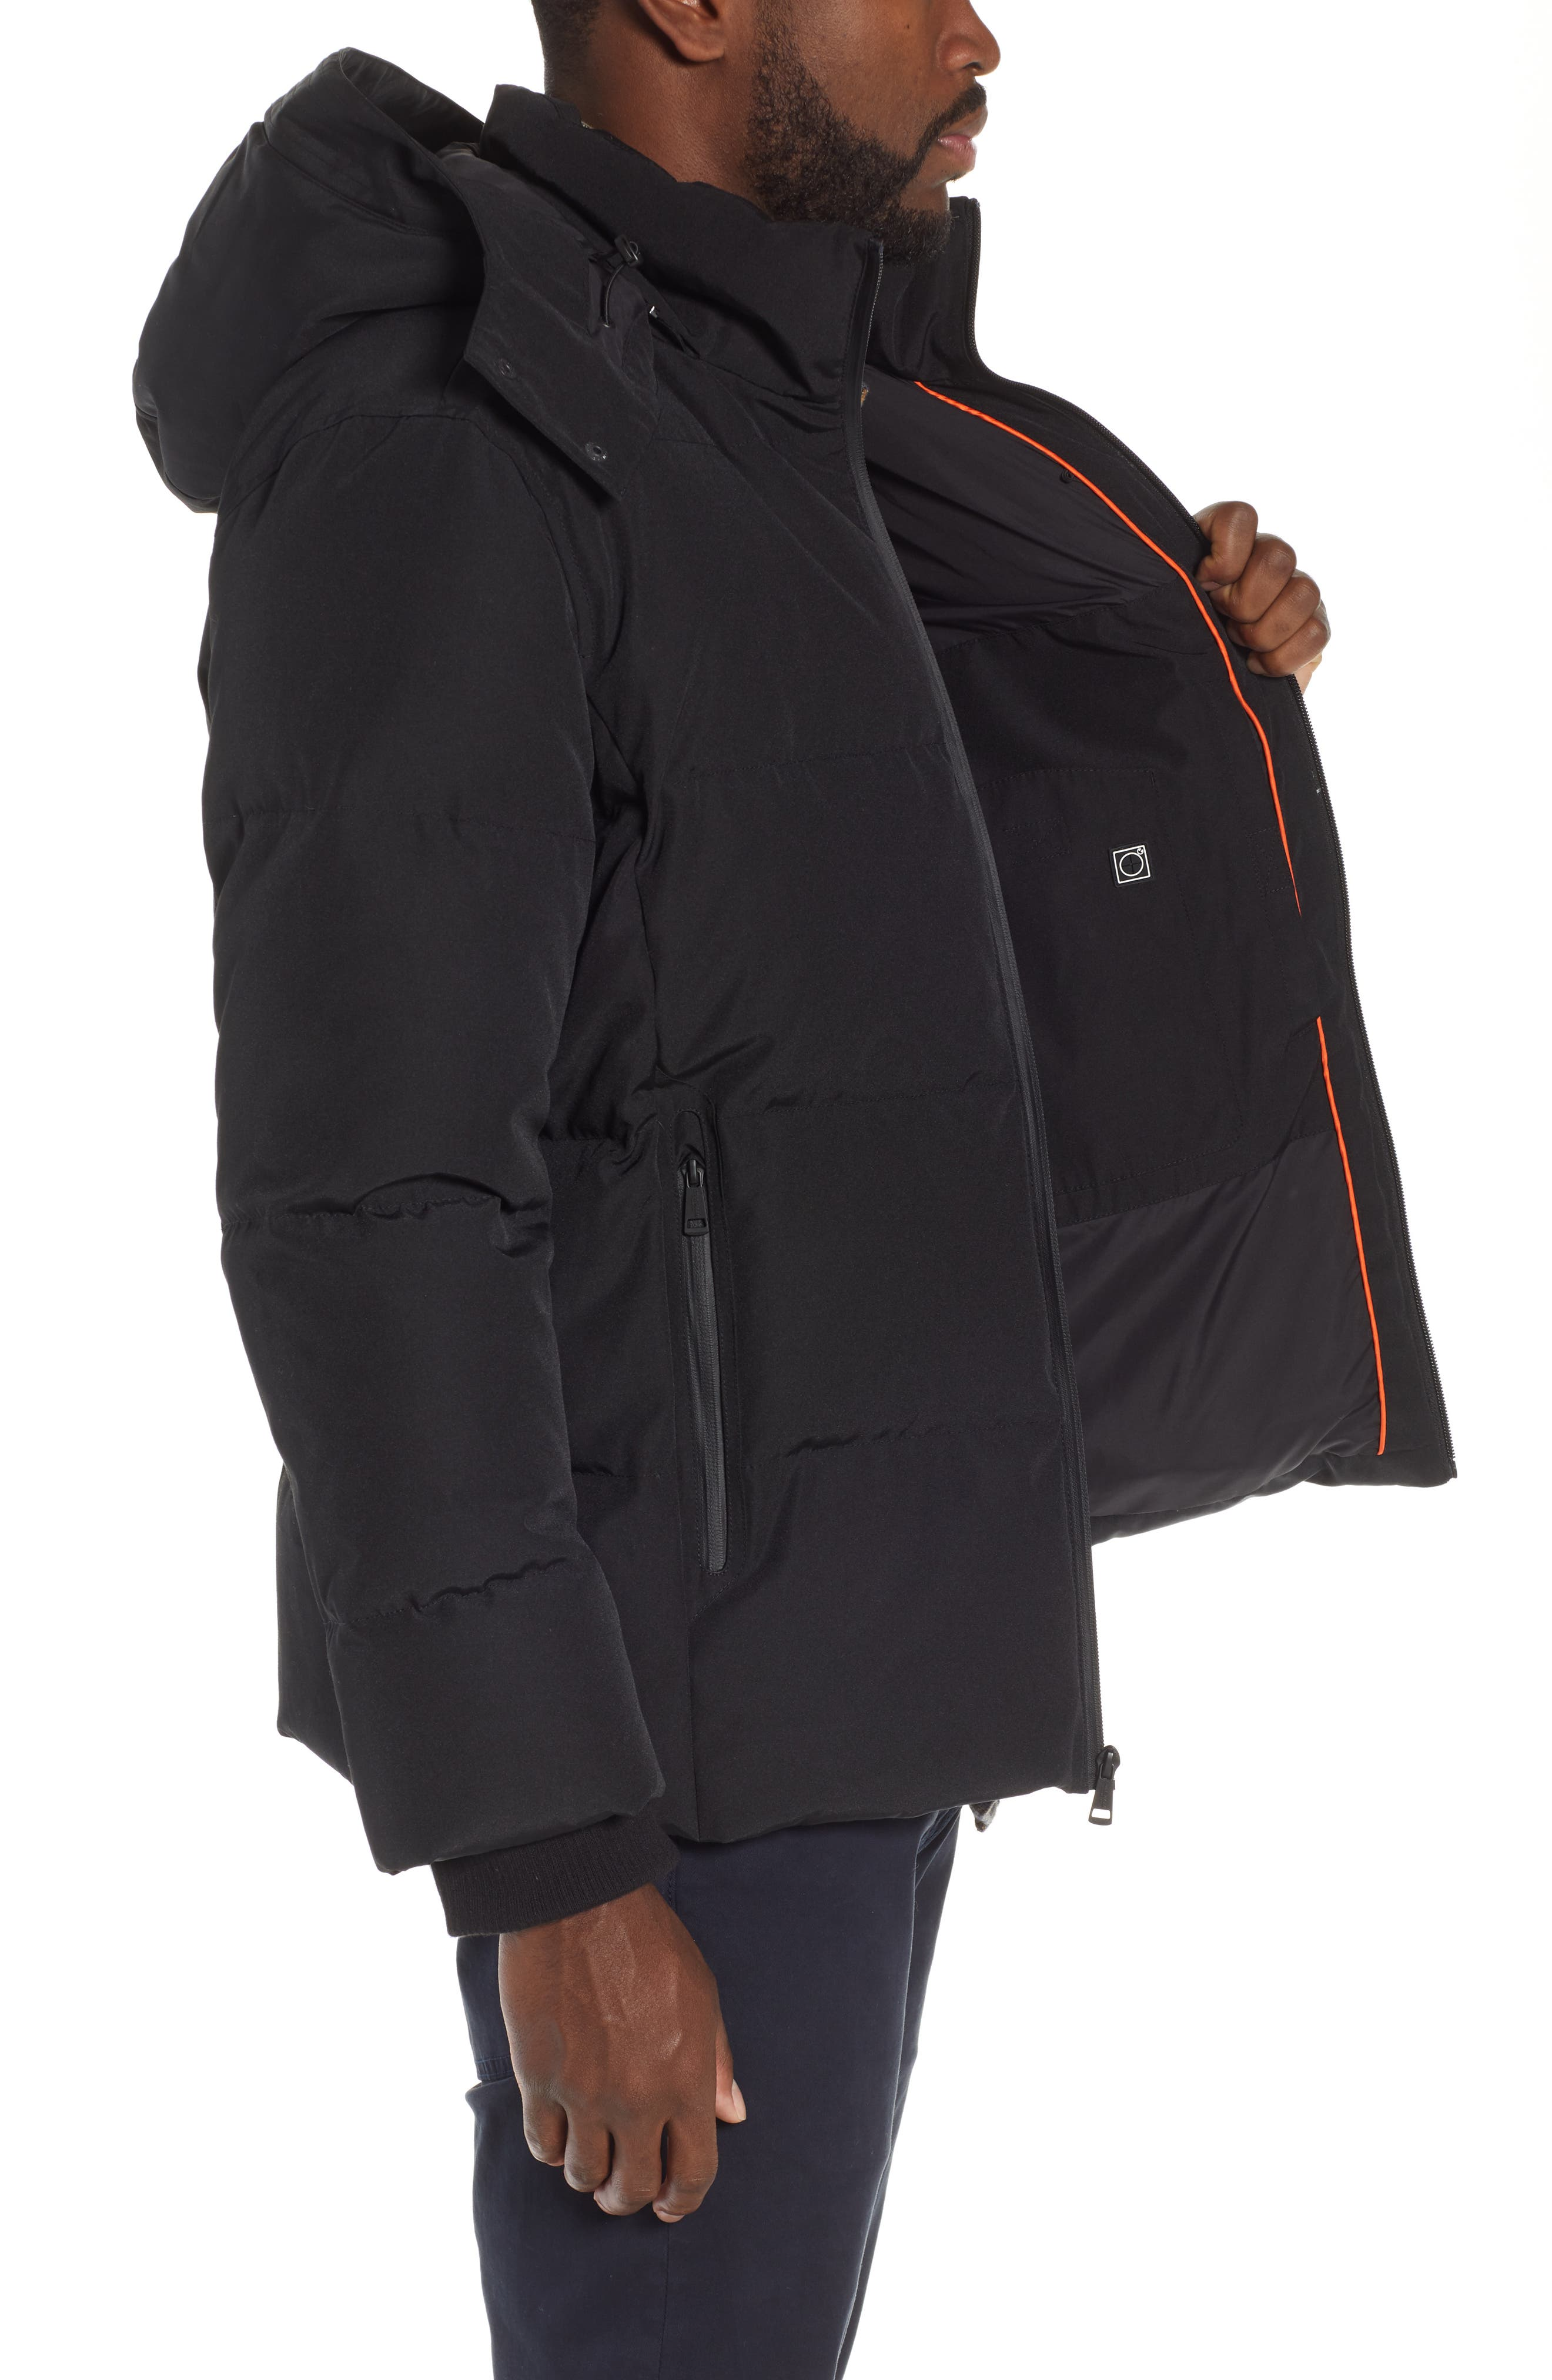 COLE HAAN SIGNATURE, Hooded Puffer Jacket, Alternate thumbnail 4, color, 001